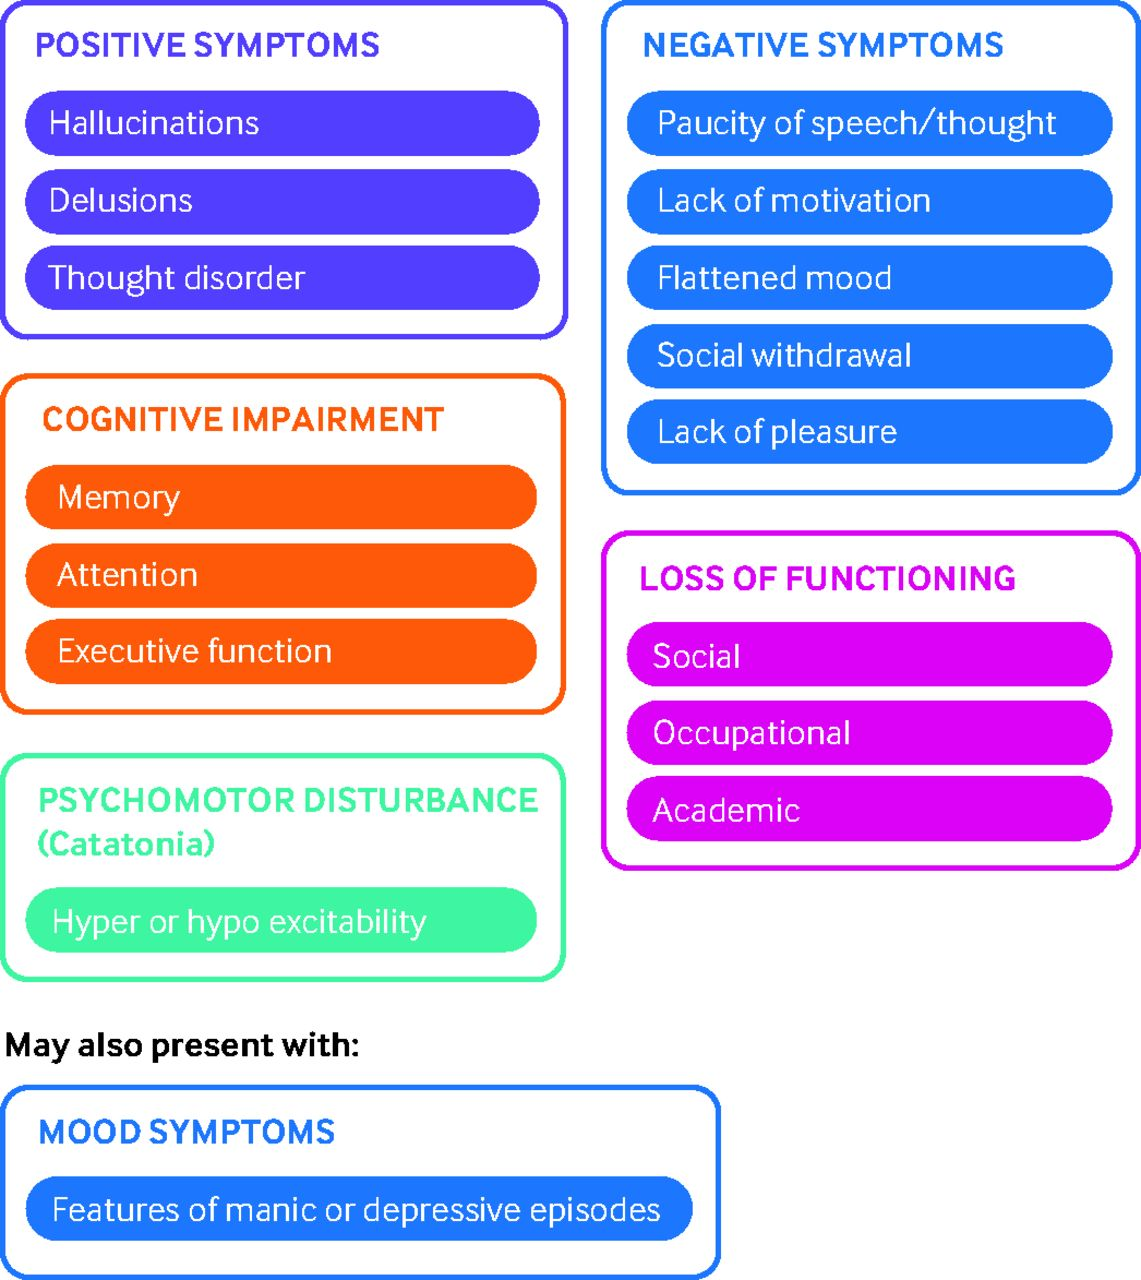 Emerging Psychosis When To Worry About >> How To Approach Psychotic Symptoms In A Non Specialist